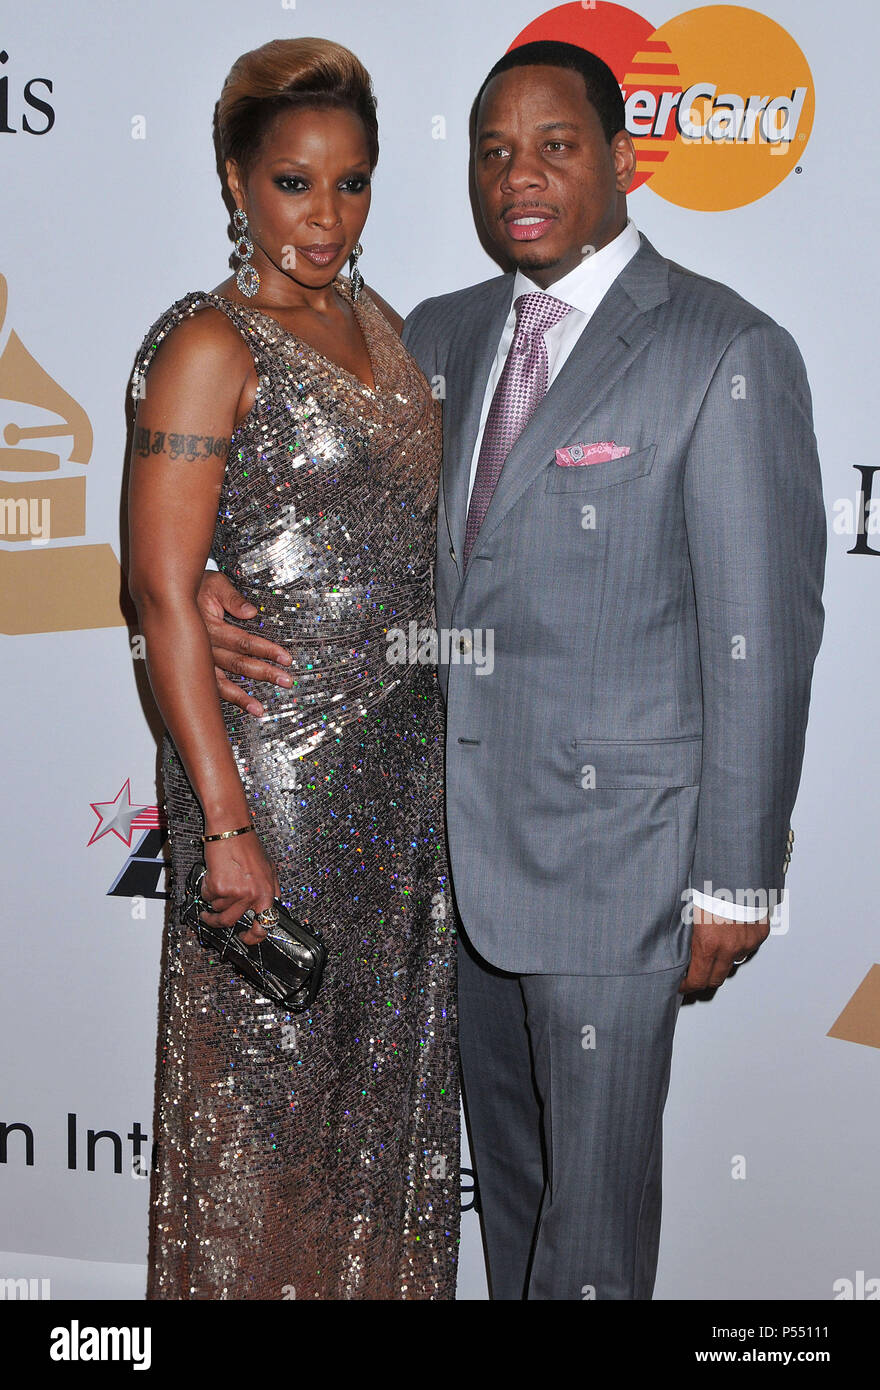 Mary J Blige and husband 109 - Clive Davis Pre-Grammy Gala at the